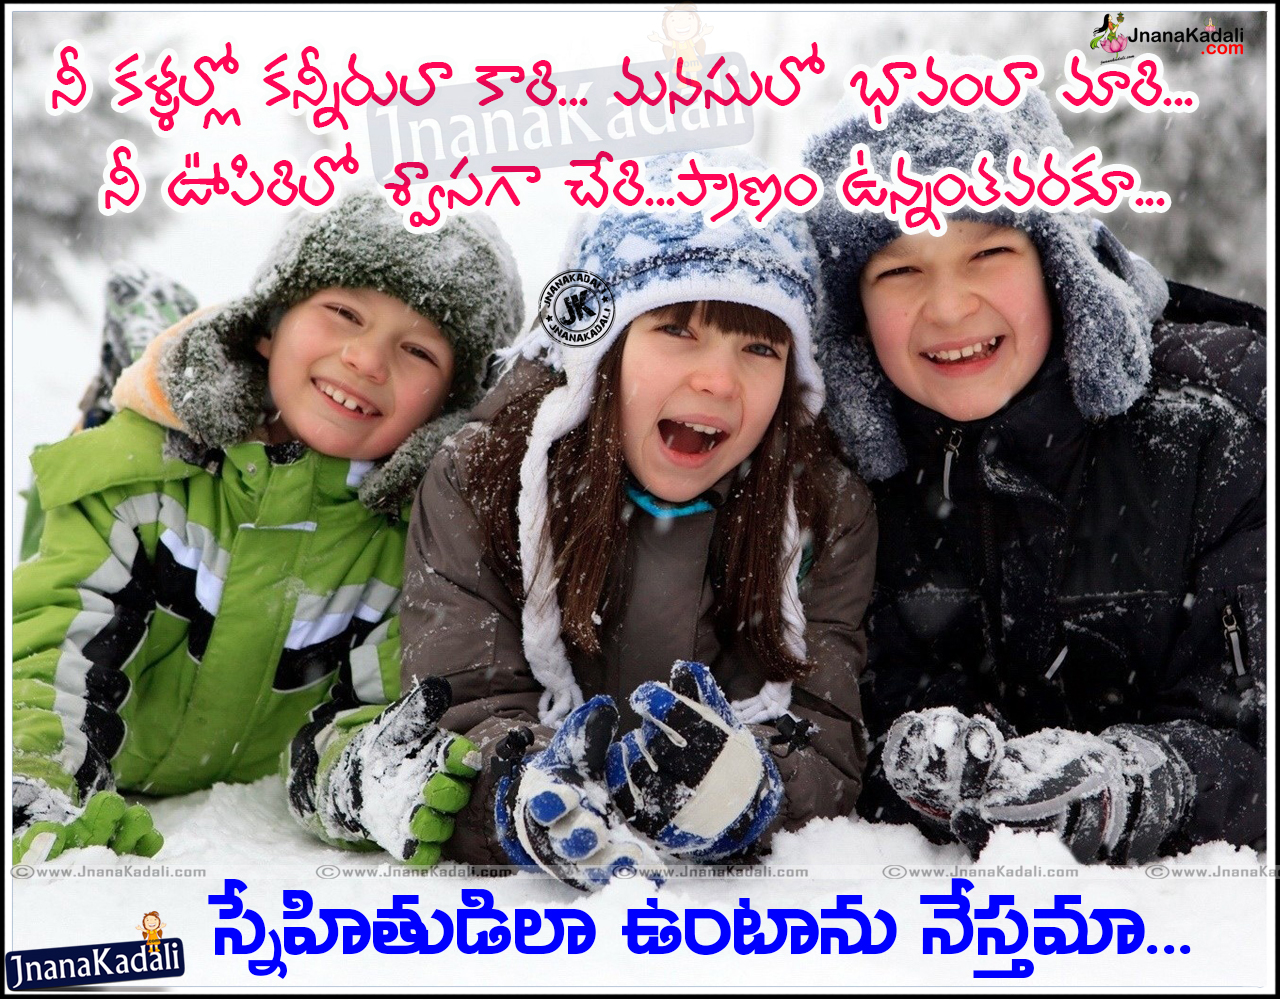 short essay on friendship in telugu language Telugu kavithalu on friendship ఫ్రెండ్ షిప్ కవితలు we have amazing famous friendship quotes and kavithalu 2018, telugu latest kavithalu and images, telugu love quotations, good friendship quotes and images for free download the best collection of quotations in telugu about friendship and hd collection of images, friendship value quotes in telugu, sentimental.